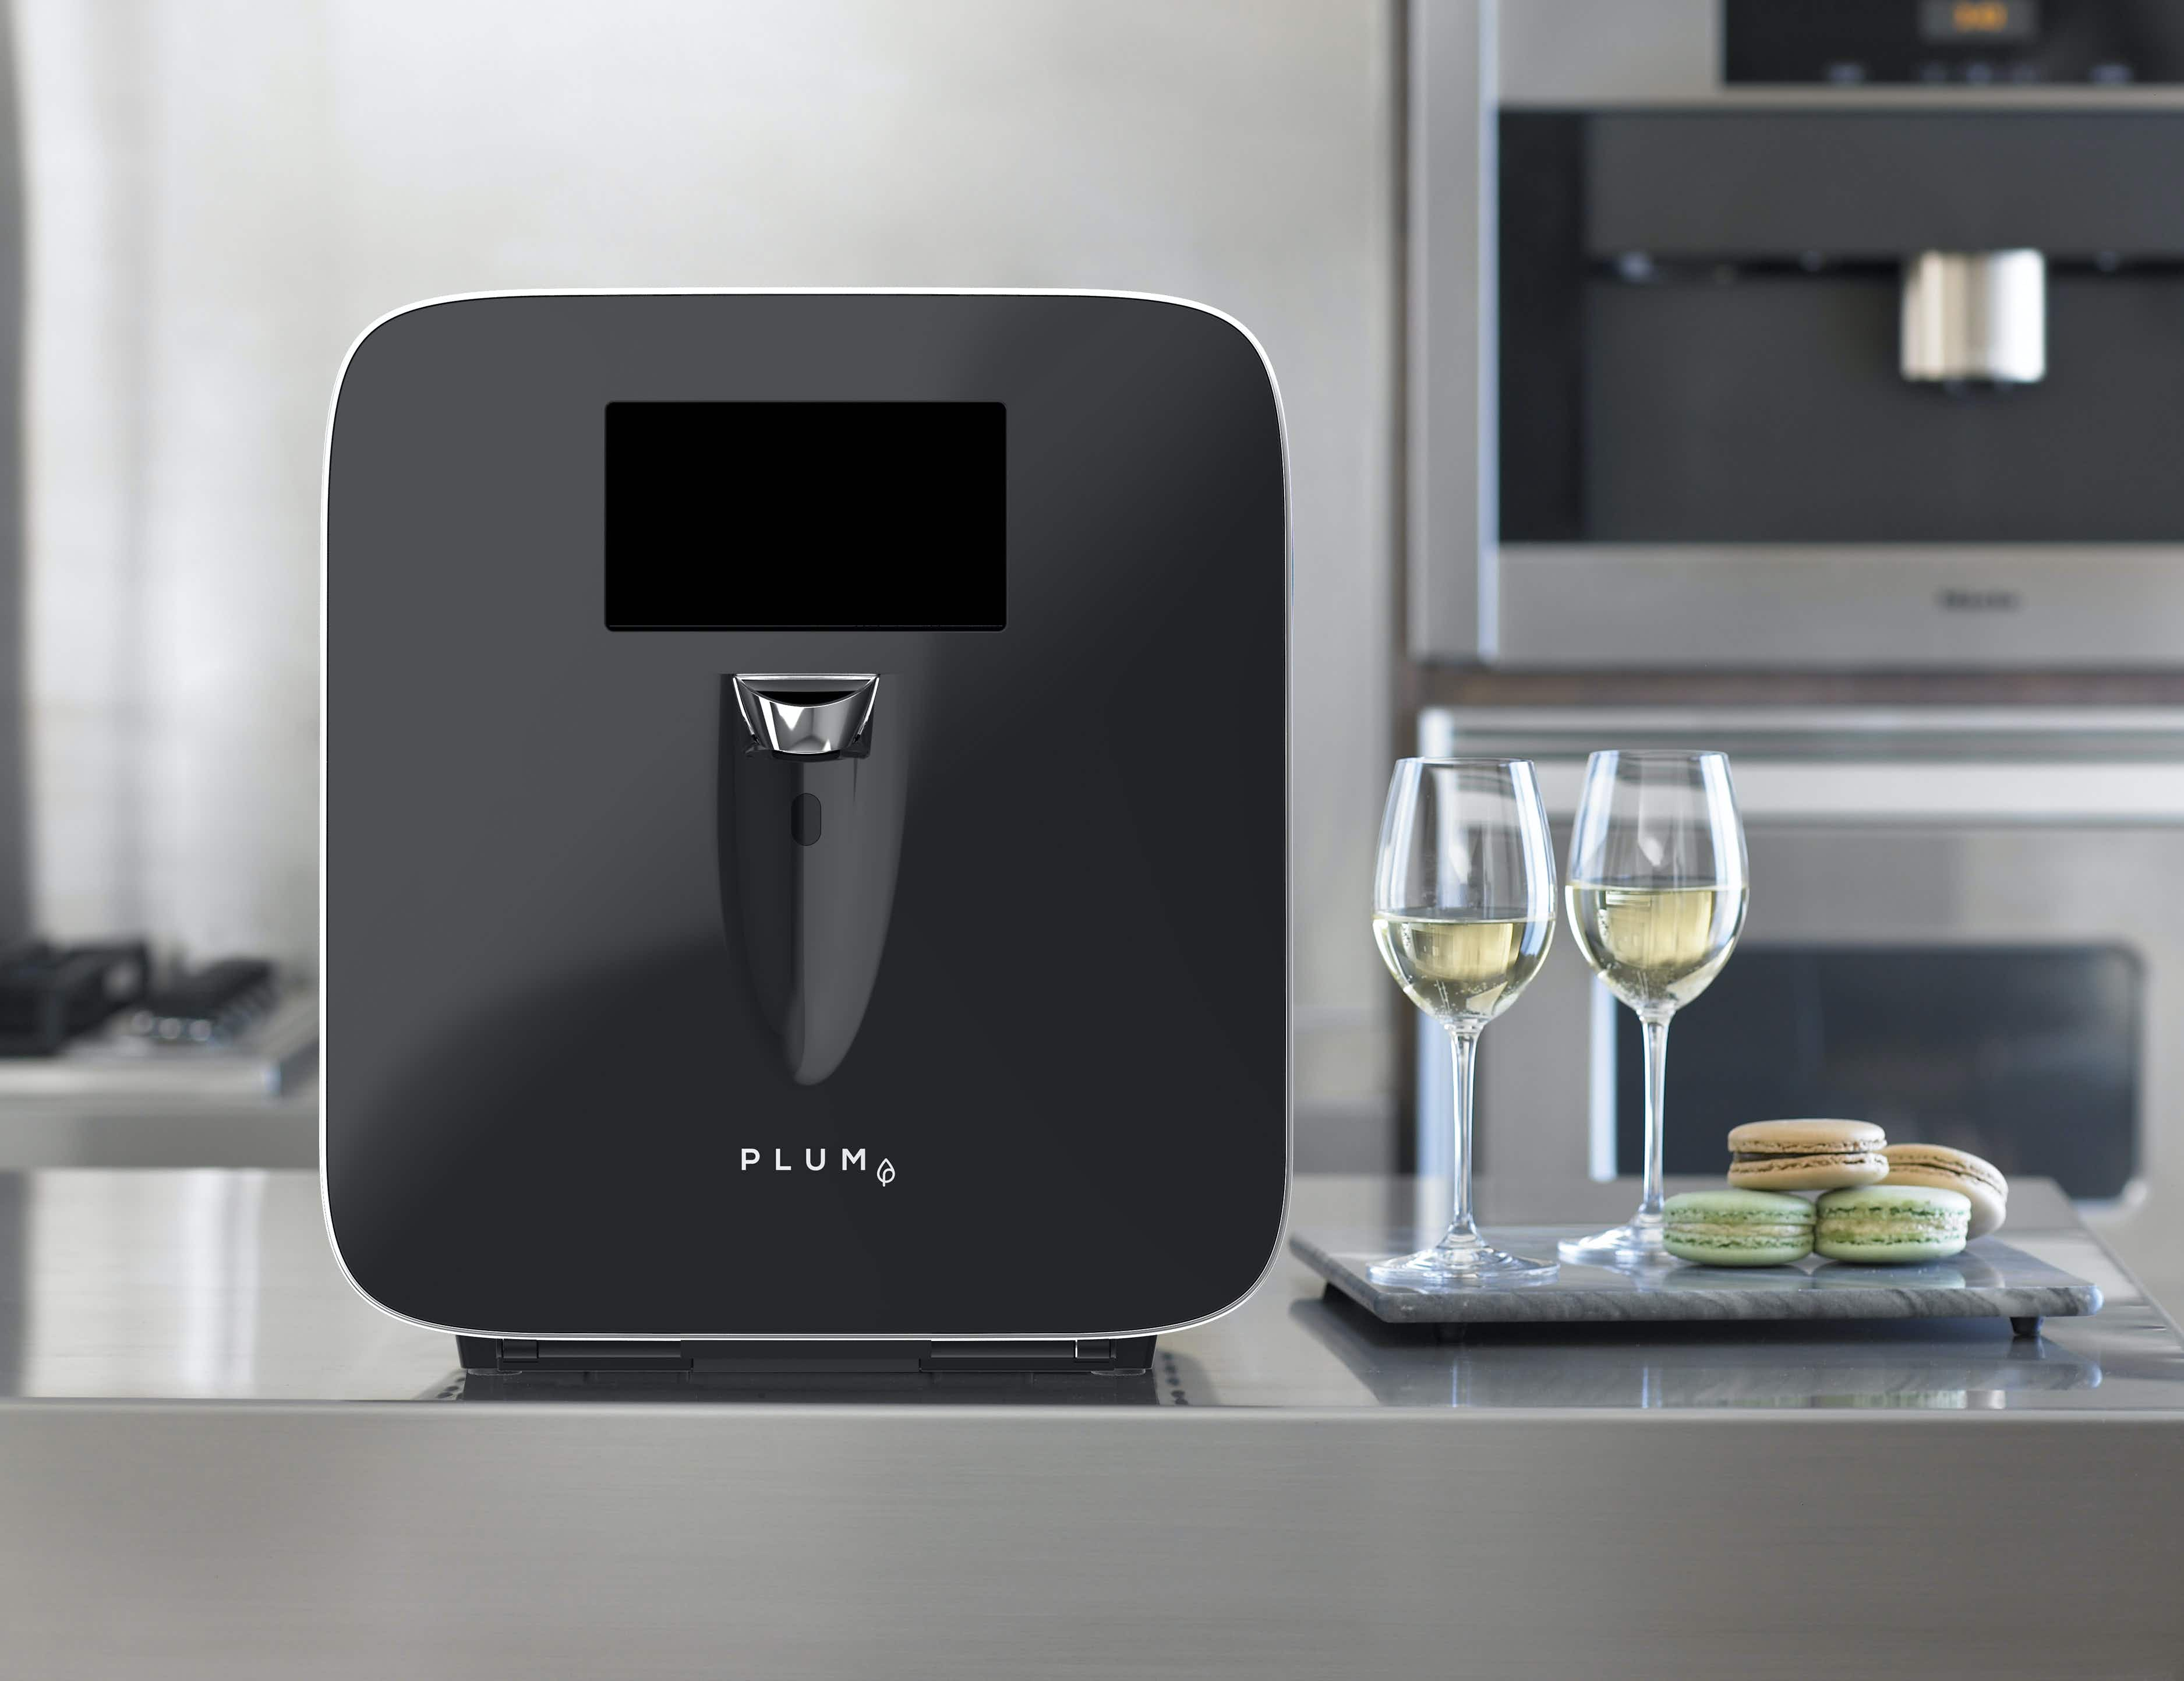 The future of hotel minibars is here; a machine that serves wine by the glass